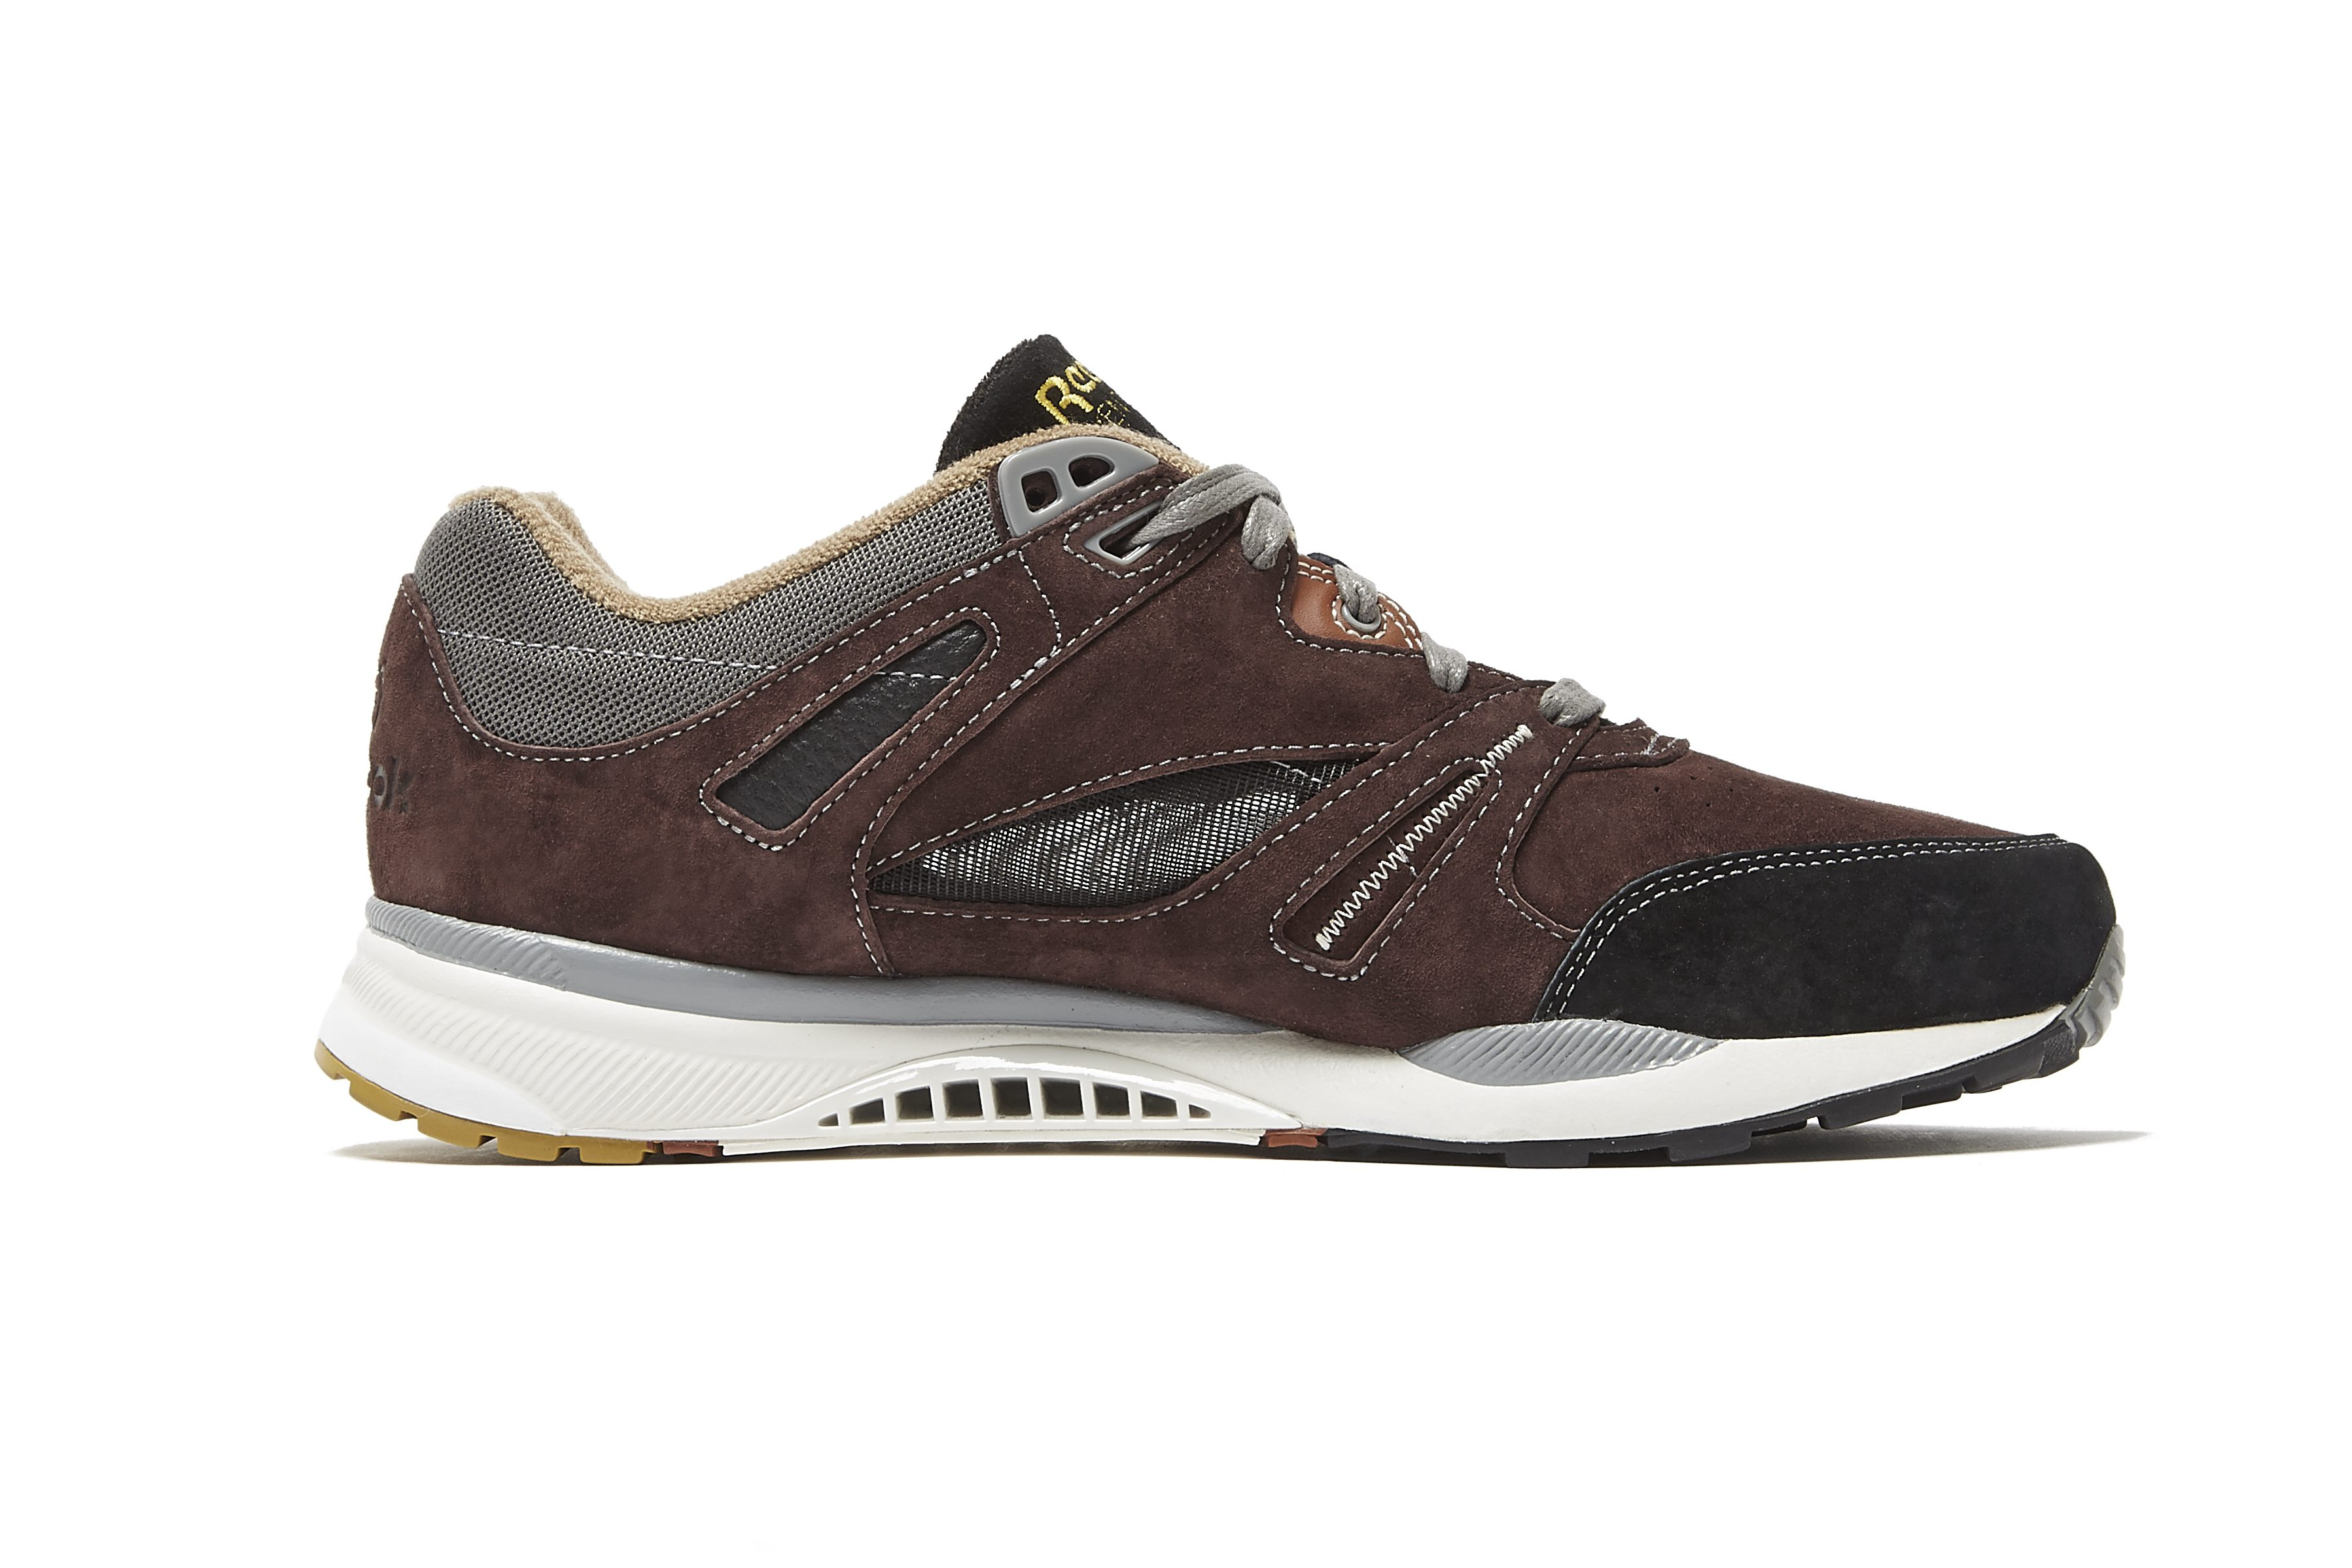 96d5bef2b8f9e Reebok Classic x Garbstore Running Pack gives British accent to ...